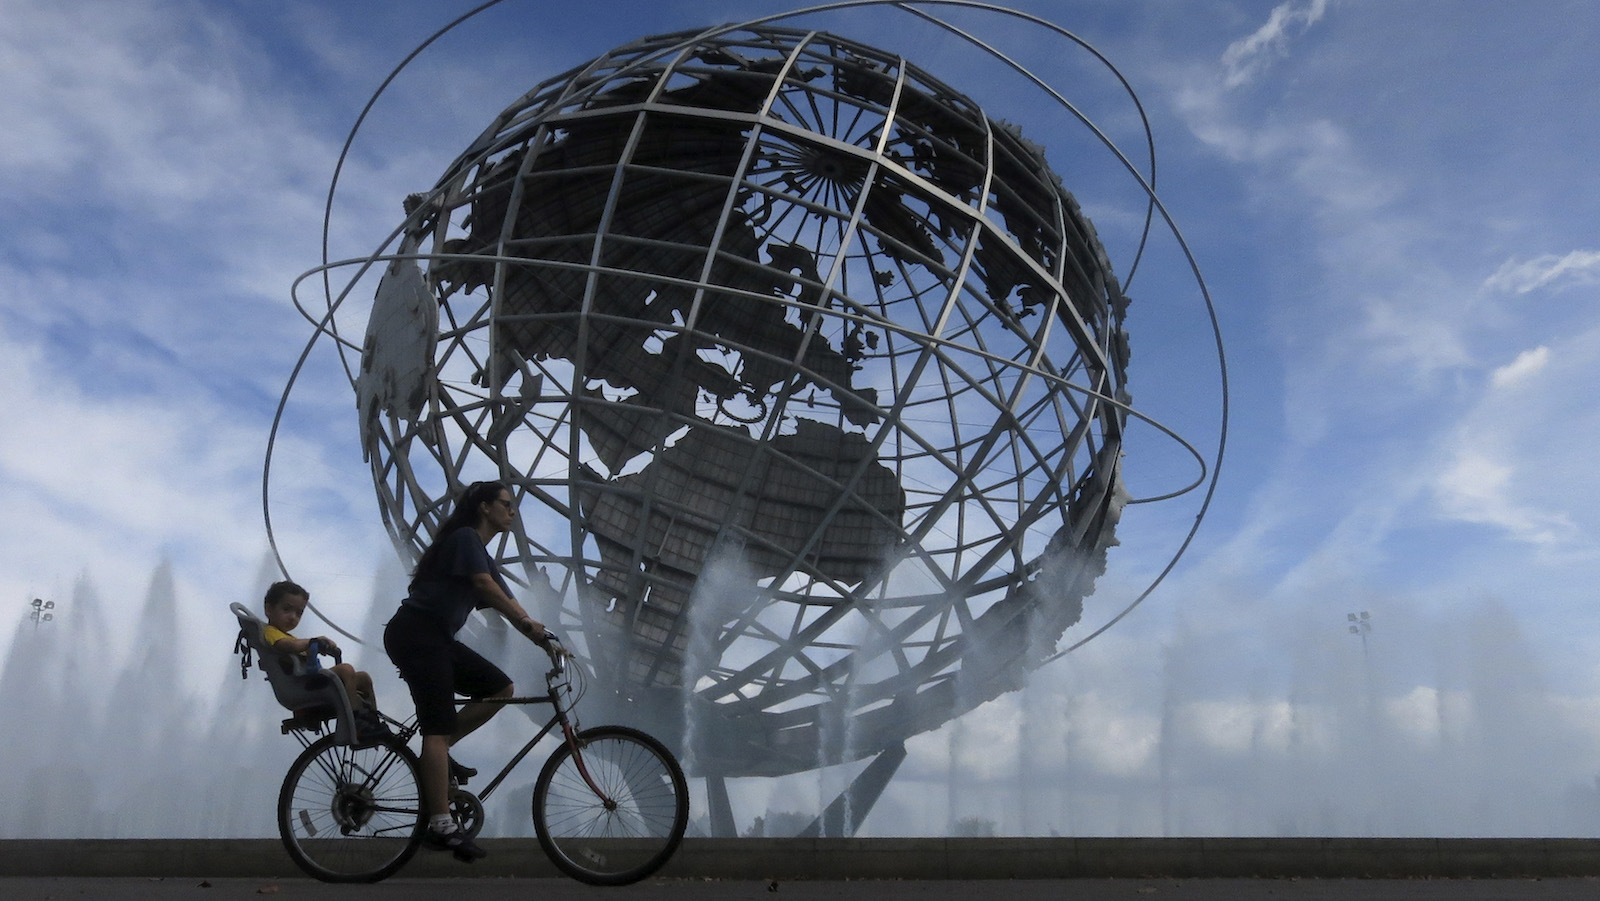 A woman and her son ride past the Unisphere in Flushing Meadows Corona Park in Queens, New York September 5, 2013. New York City is iconic in any weather, but the warm season adds a special flavour to its bustling streets, leafy parks and world-famous skyline. The summer is about to draw to a close, as fall begins in the northern hemisphere with the Autumnal Equinox on September 22. Picture taken September 5, 2013. REUTERS/Gary Hershorn (UNITED STATES - Tags: CITYSCAPE SOCIETY TPX IMAGES OF THE DAY)   ATTENTION EDITORS: PICTURE 35 40 FOR PACKAGE  'NYC - A SEASON IN CITY'  SEARCH 'NYC HERSHORN' FOR ALL - RTX13T9Y